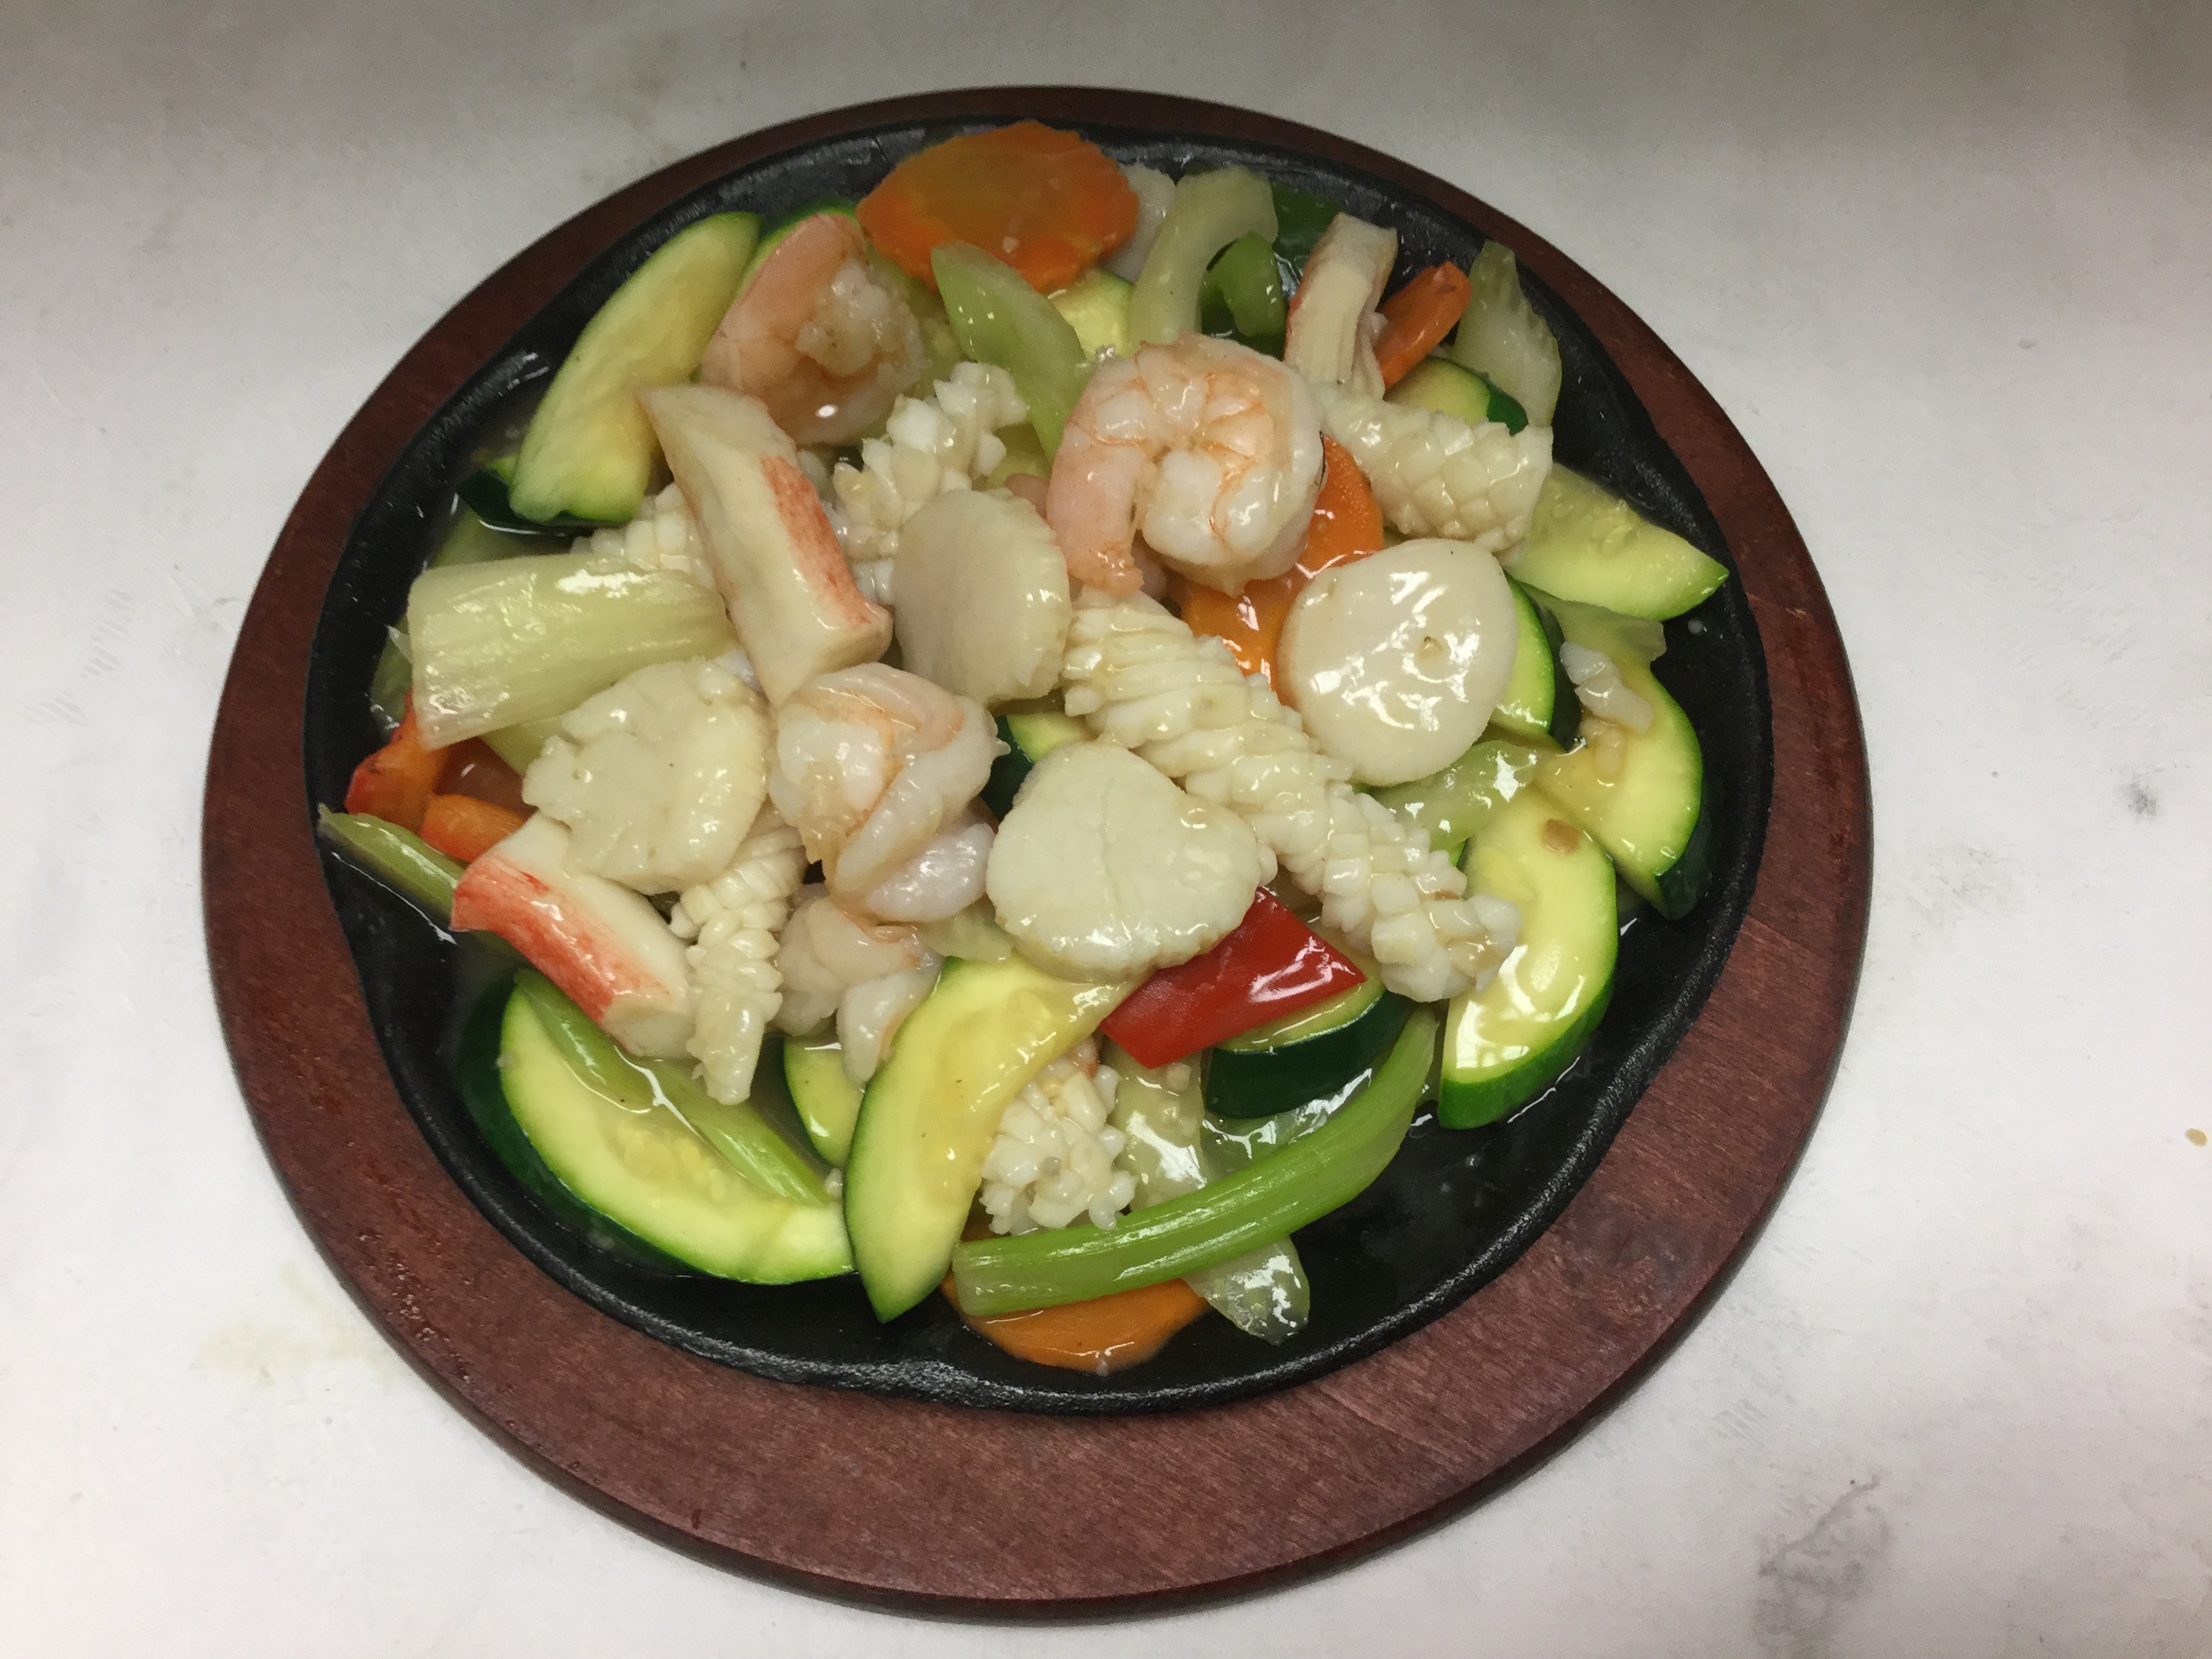 mixed vegetables and seafood